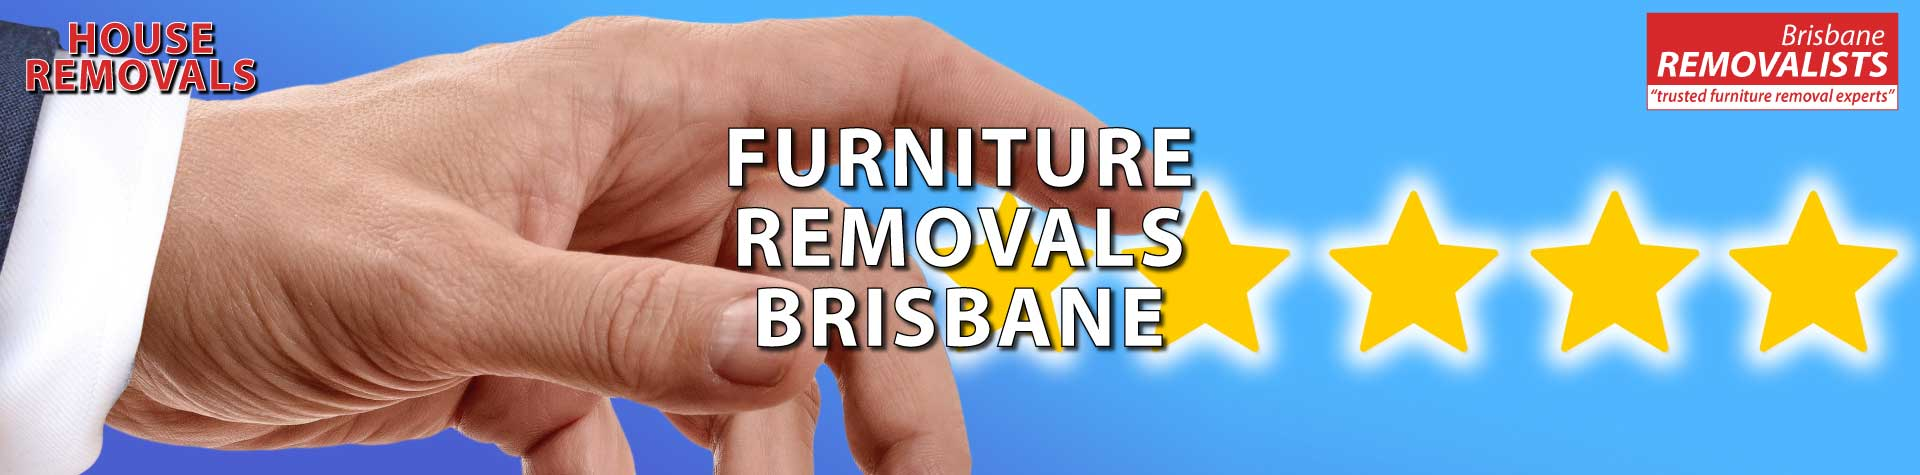 Furniture Removals Brisbane feature image